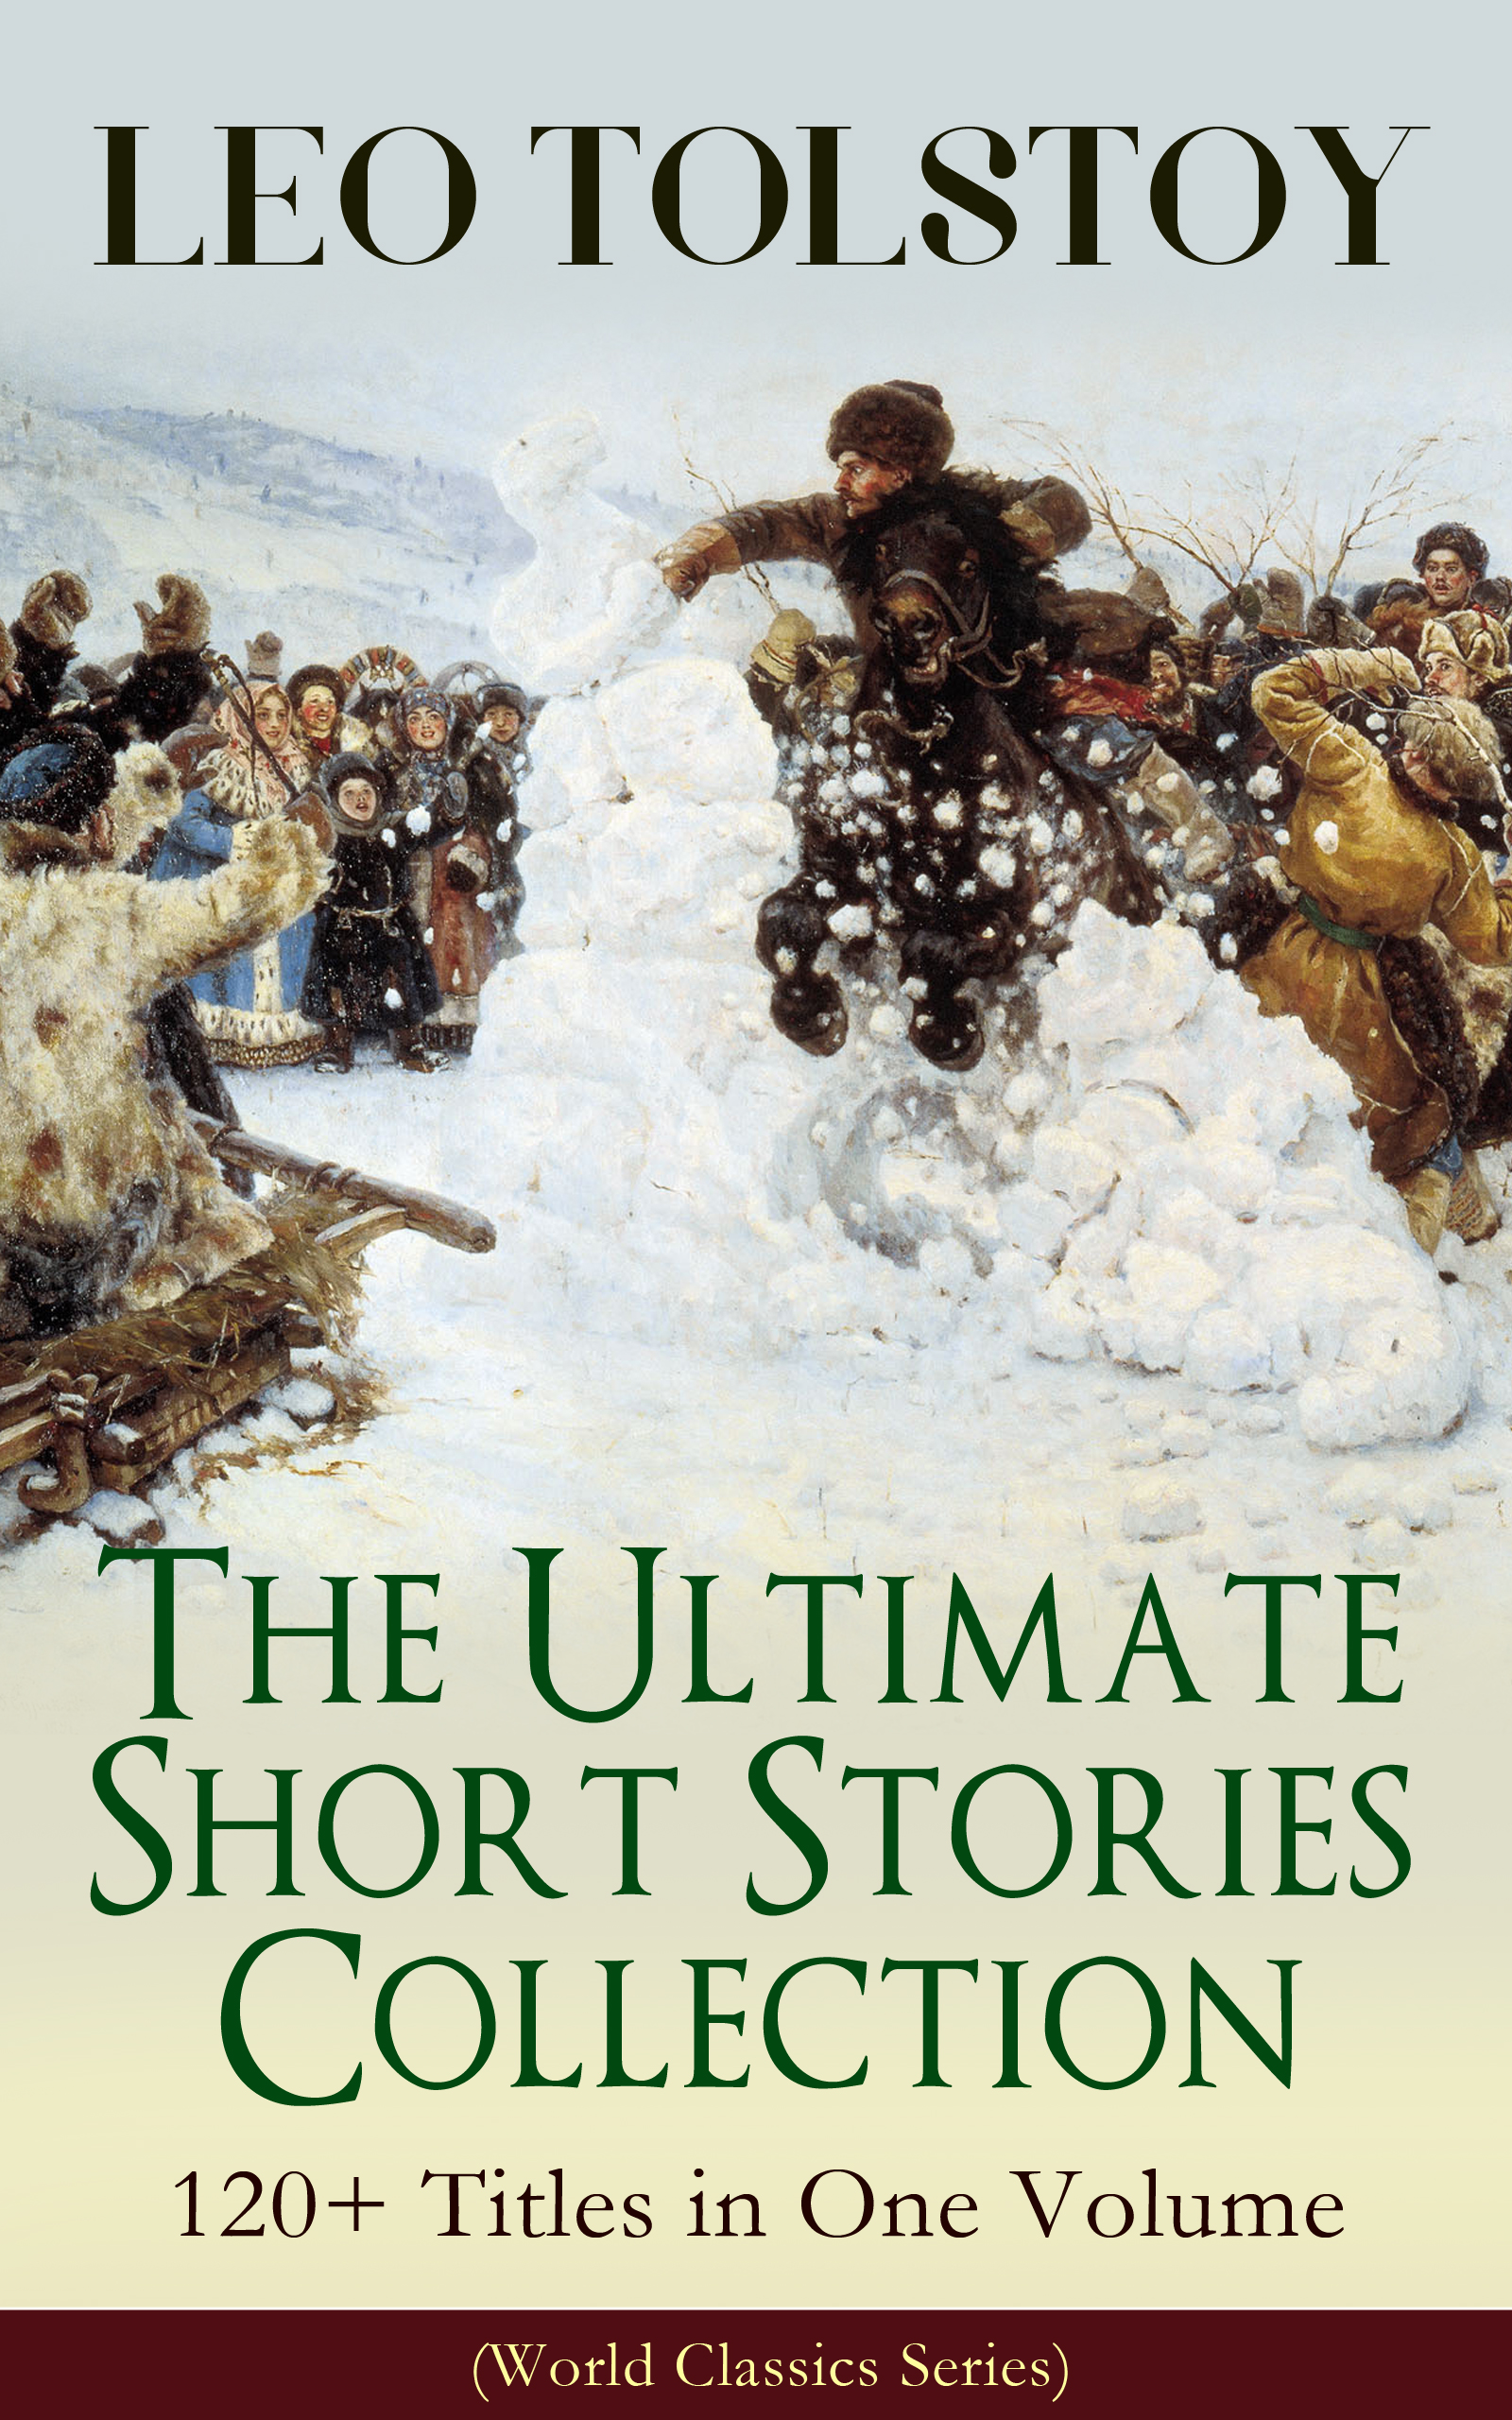 Leo Tolstoy LEO TOLSTOY – The Ultimate Short Stories Collection: 120+ Titles in One Volume (World Classics Series) leo tolstoy resurrection volume 2